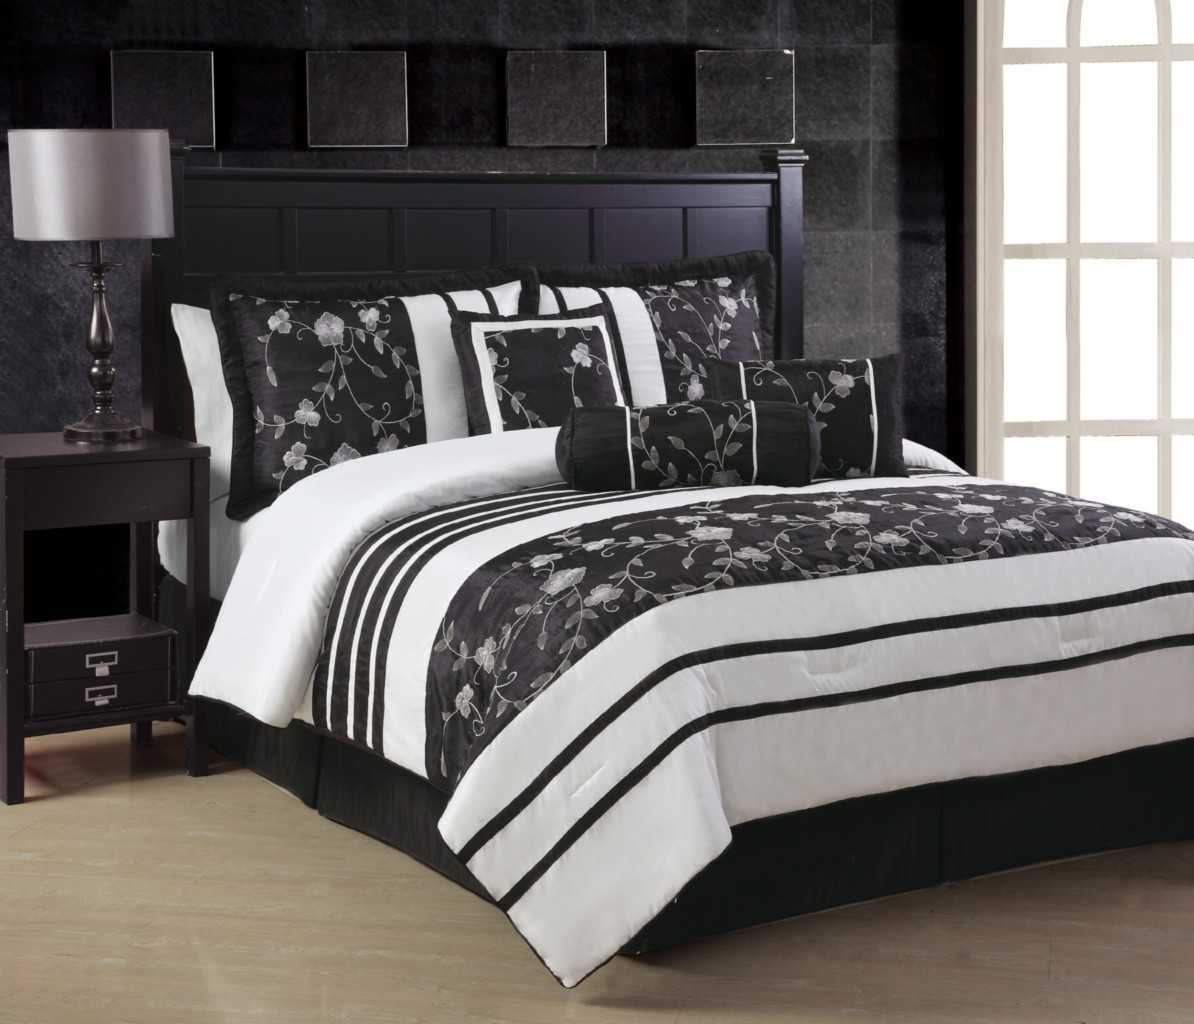 Ava White & Black Embroidery KING / QUEEN Comforter Set or ...